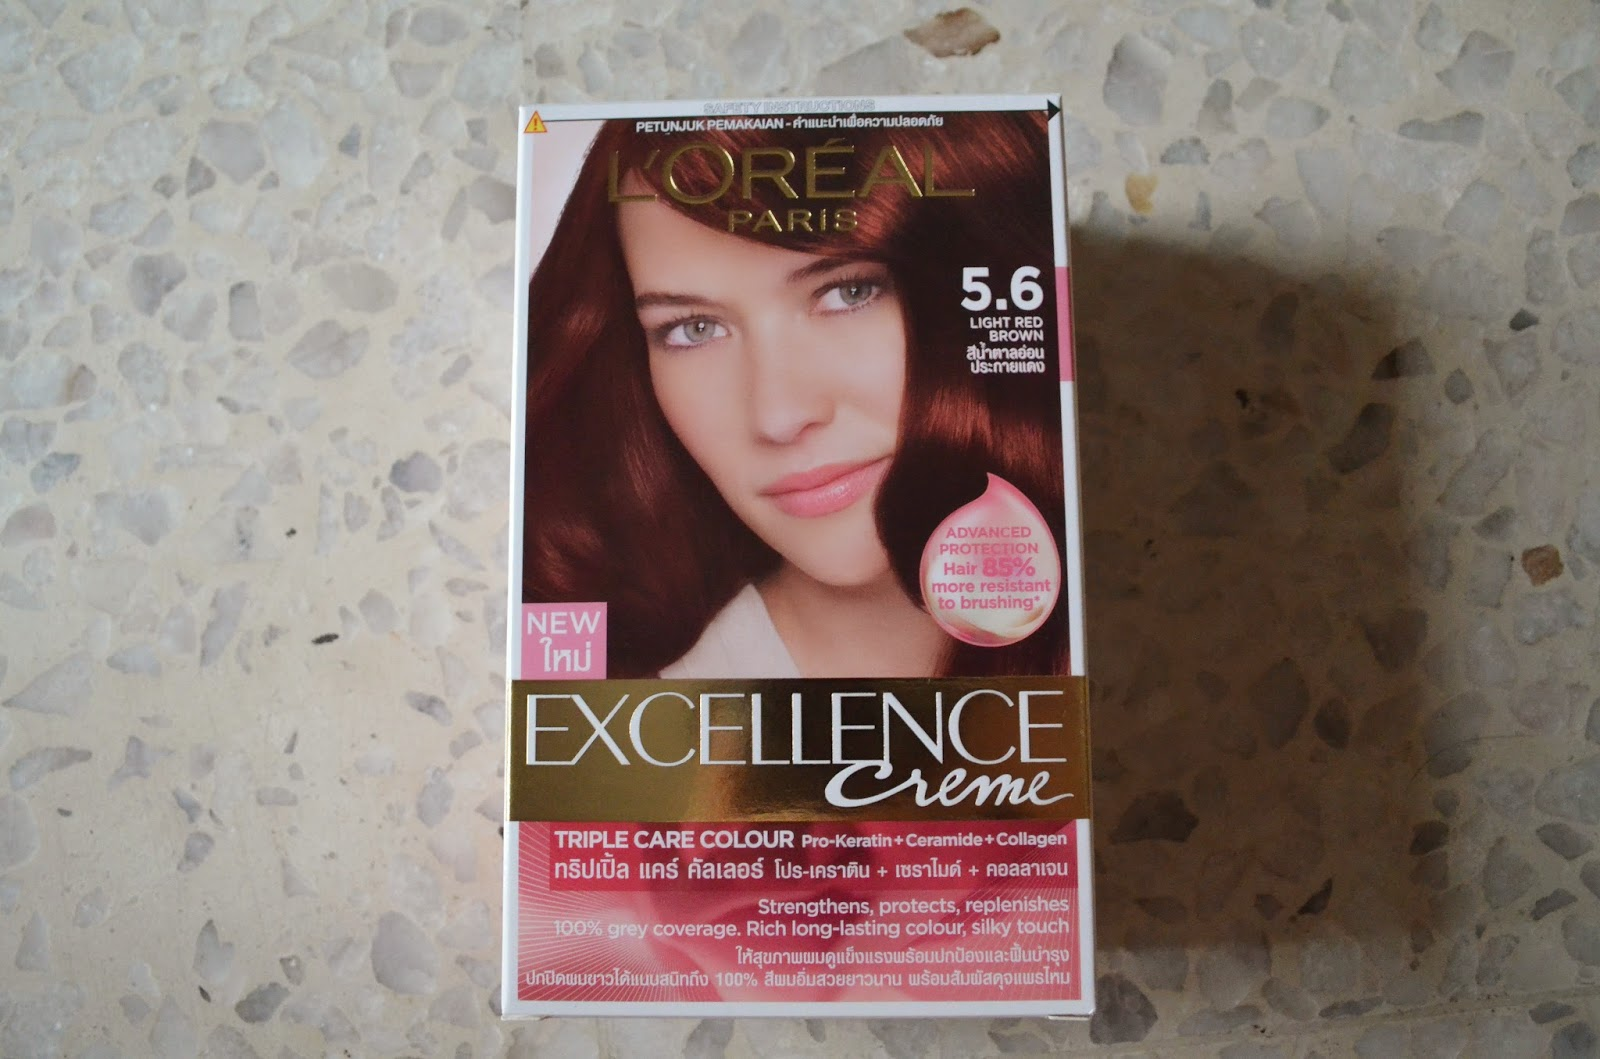 Rachel Lim L Oreal Excellence Creme 5 6 Light Red Brown On Black